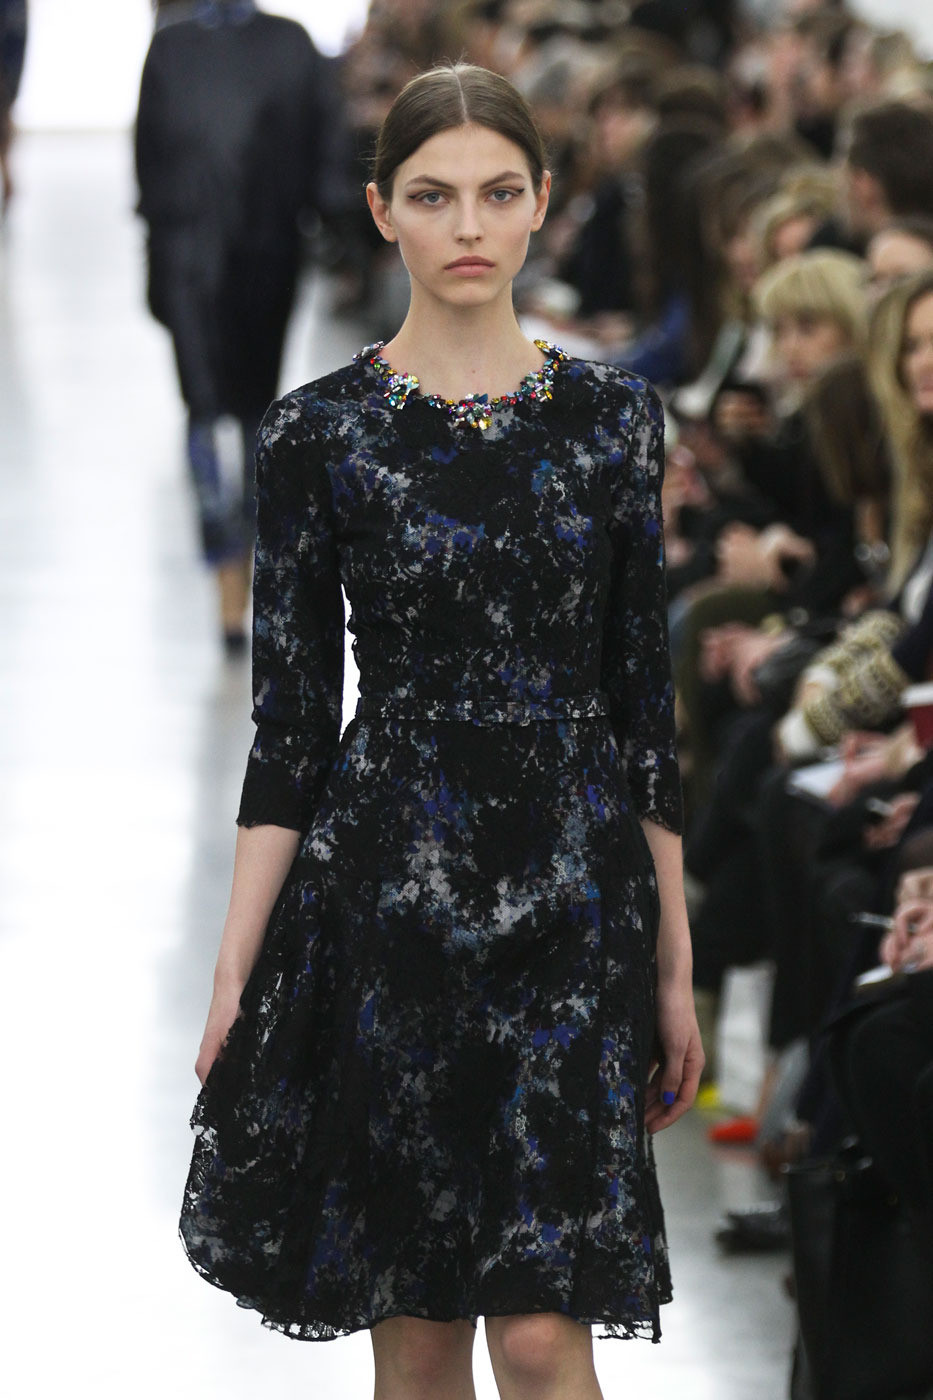 Erdem Fall Winter 2018 2019 Fashion Show: Erdem Fall 2012 Runway Pictures